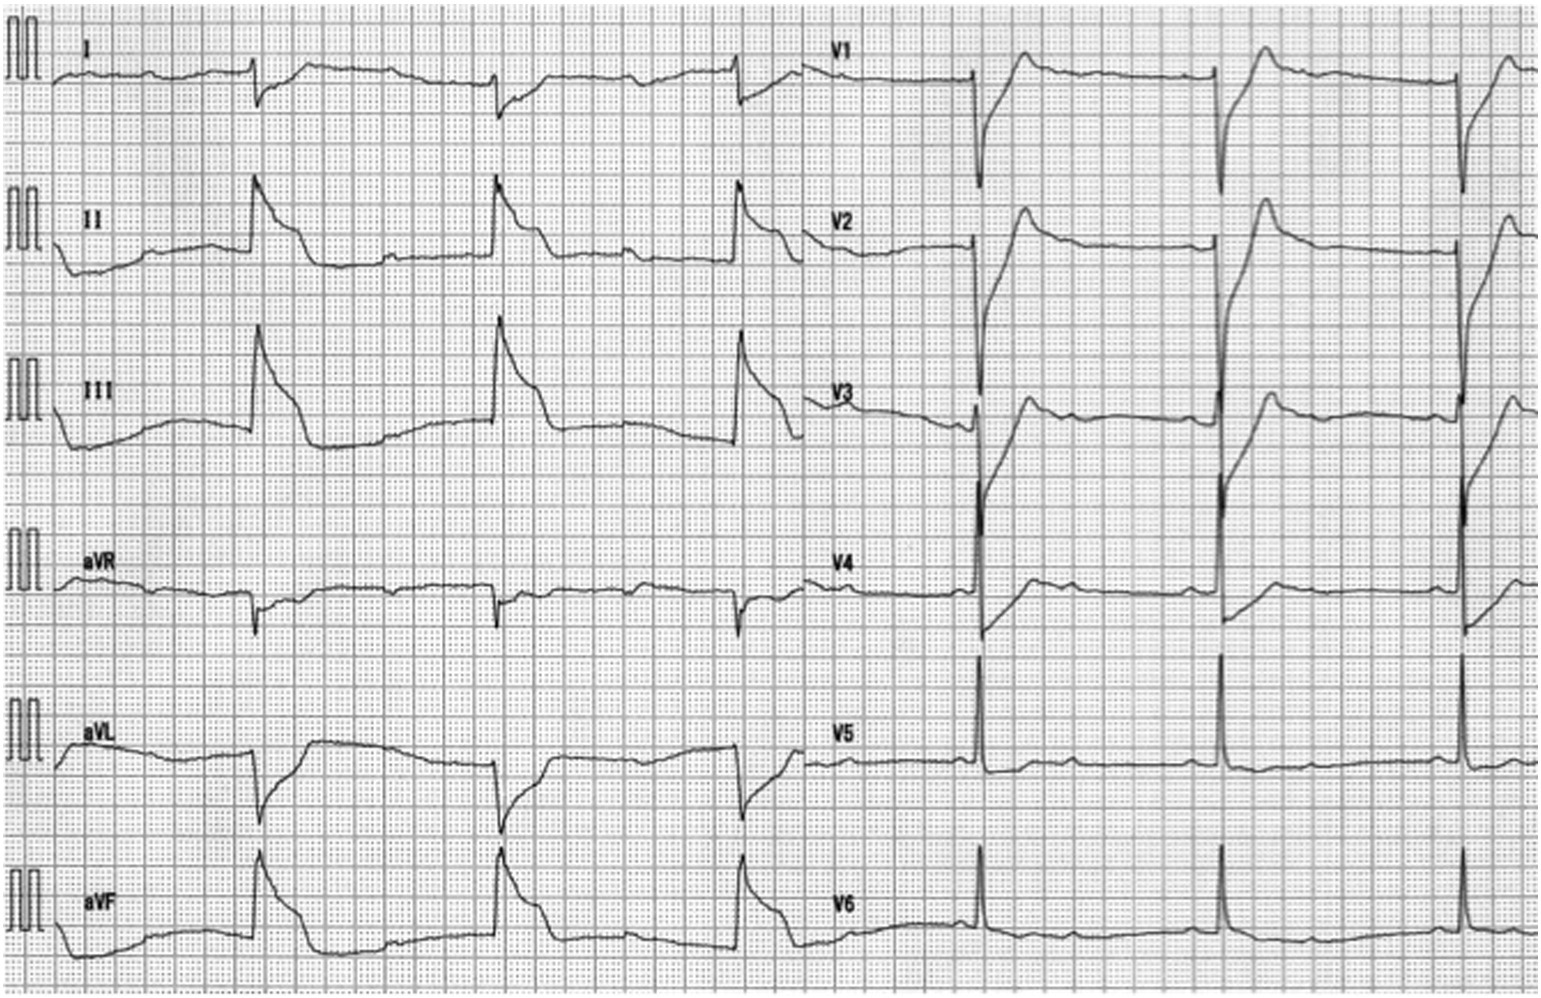 Resuscitated Out Of Hospital Cardiac Arrest With Normal Postresuscitation 12 Lead